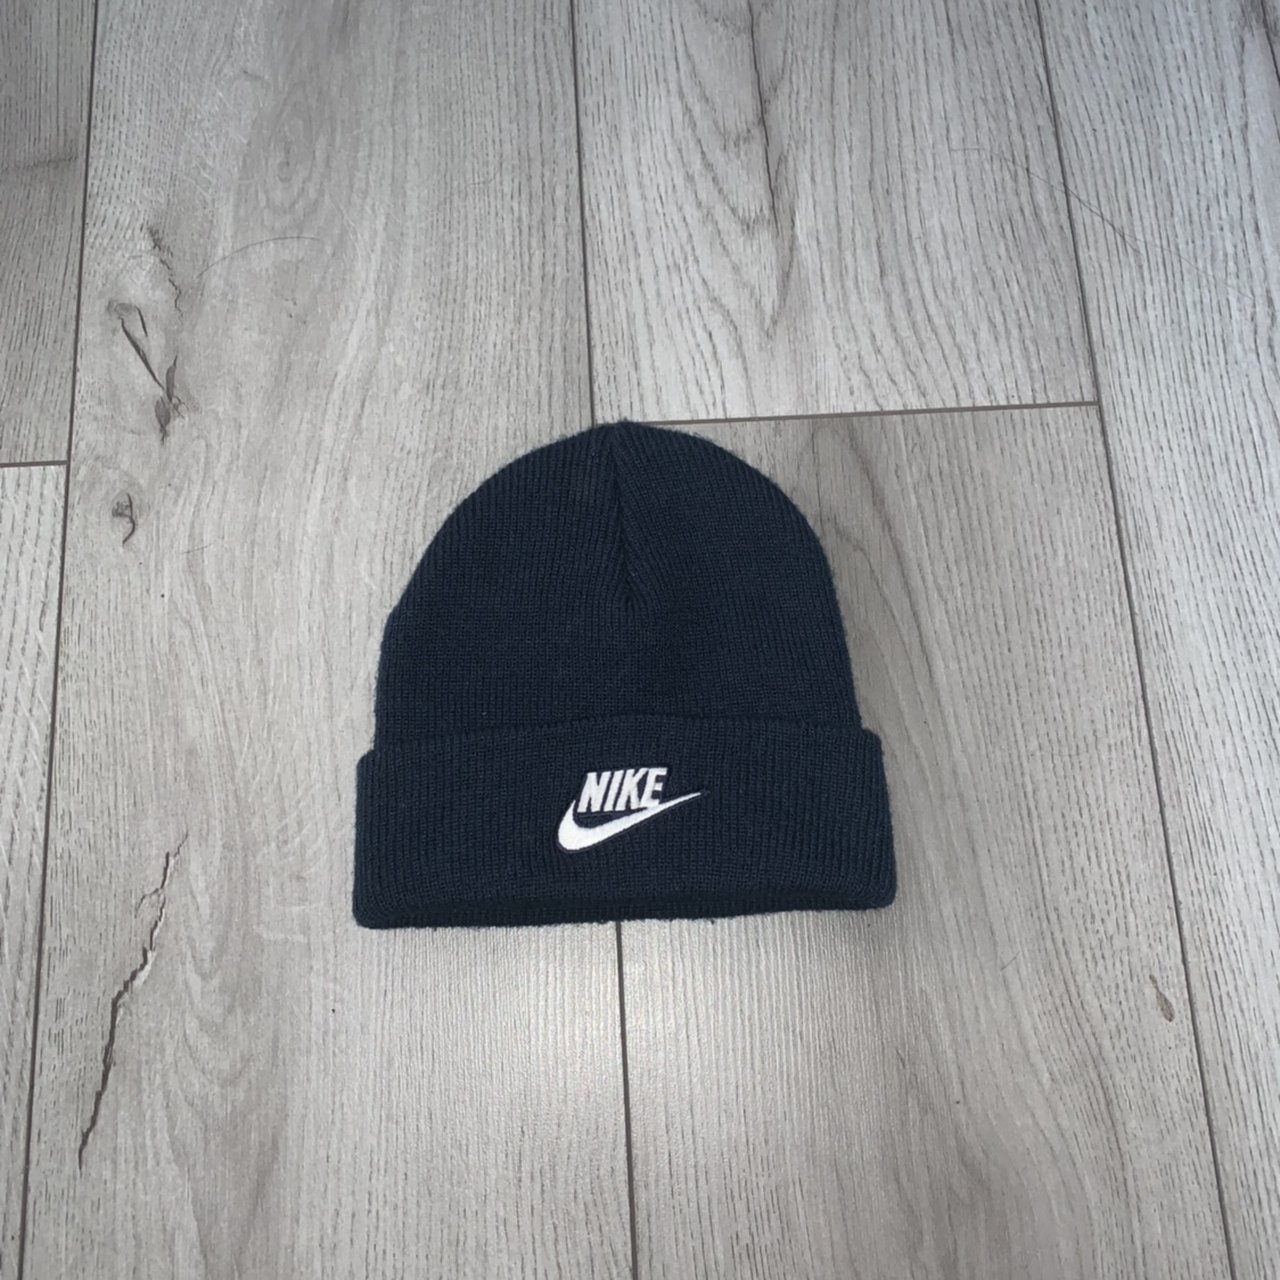 89e15a082dc Nike beanie hat Child kids size Excellent condition Hardy - Depop